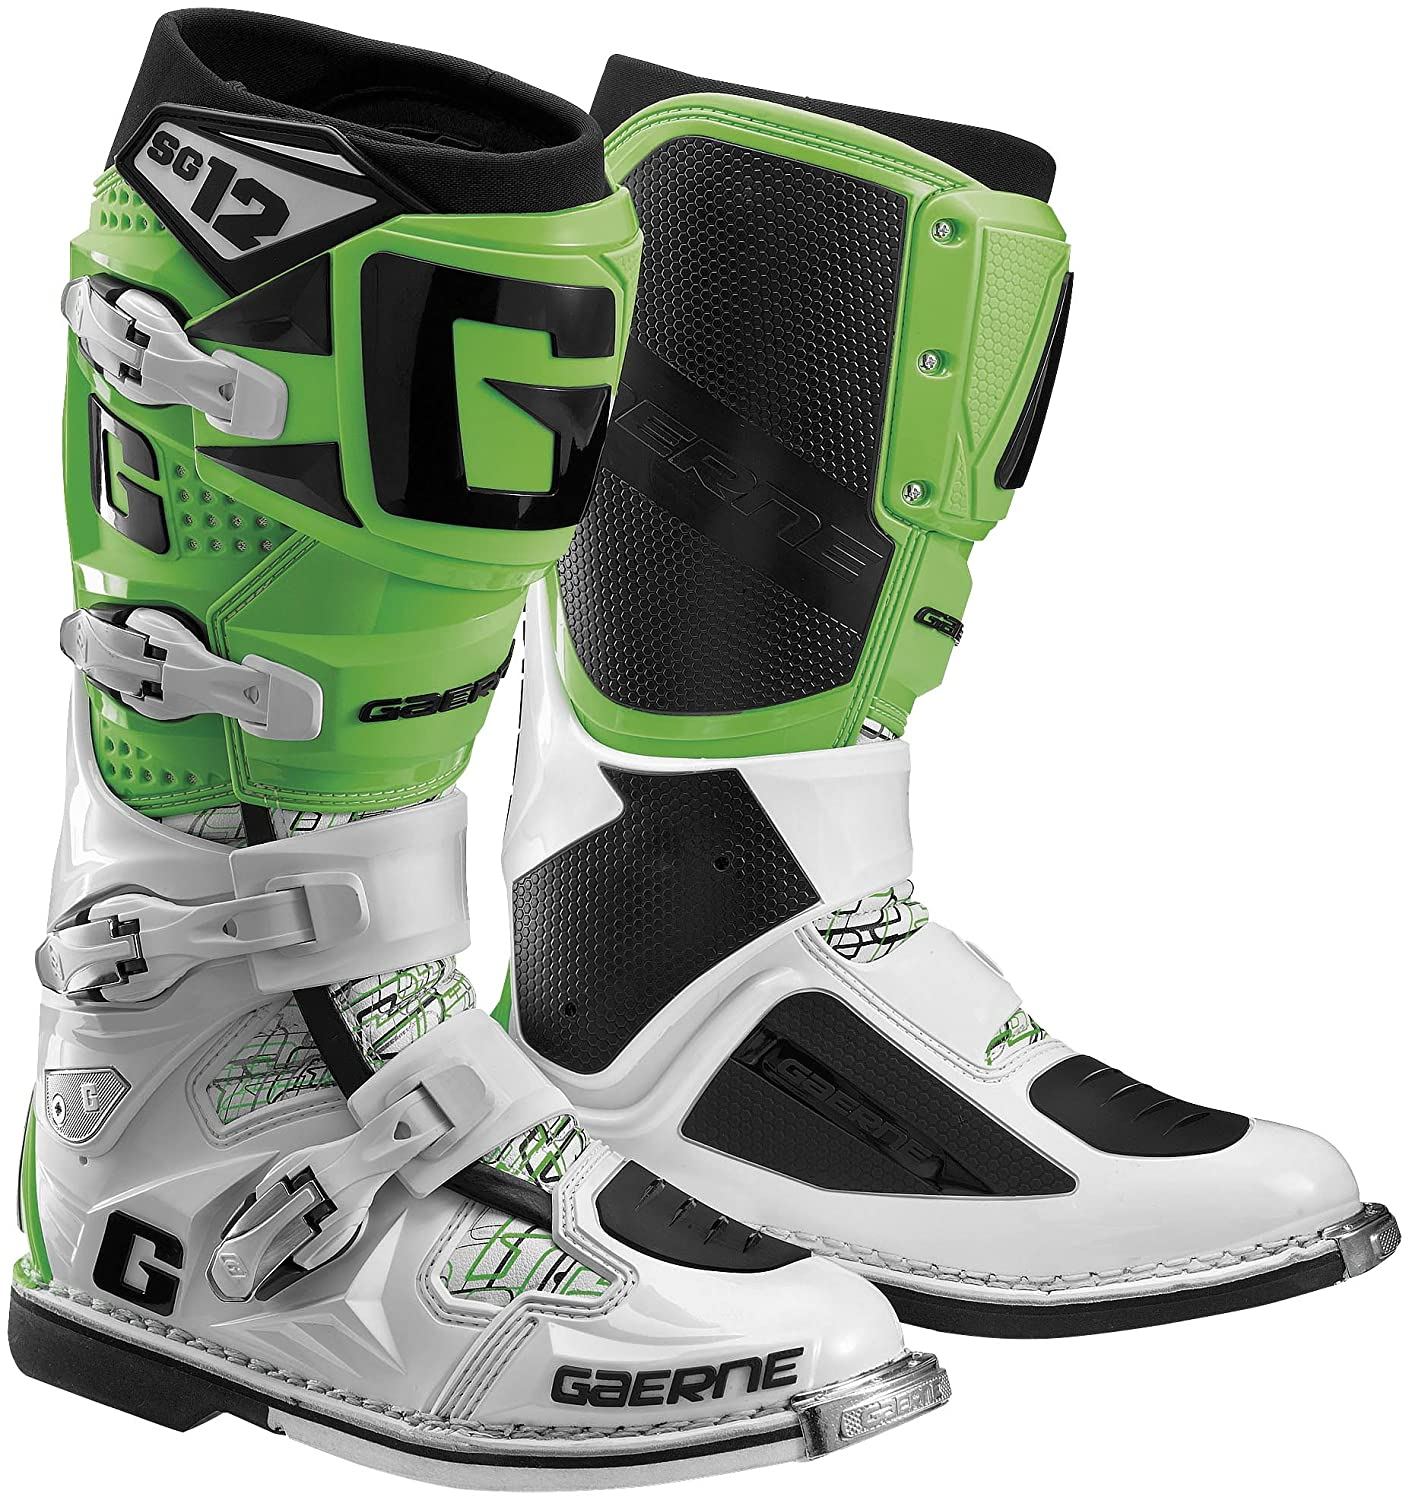 Gaerne SG-12 Boots, Primary Color: Green, Size: 12, Distinct Name: Green, Gender: Mens/Unisex 2174-020-12 B00M9IGN8E 12 M US|Green/White/Black